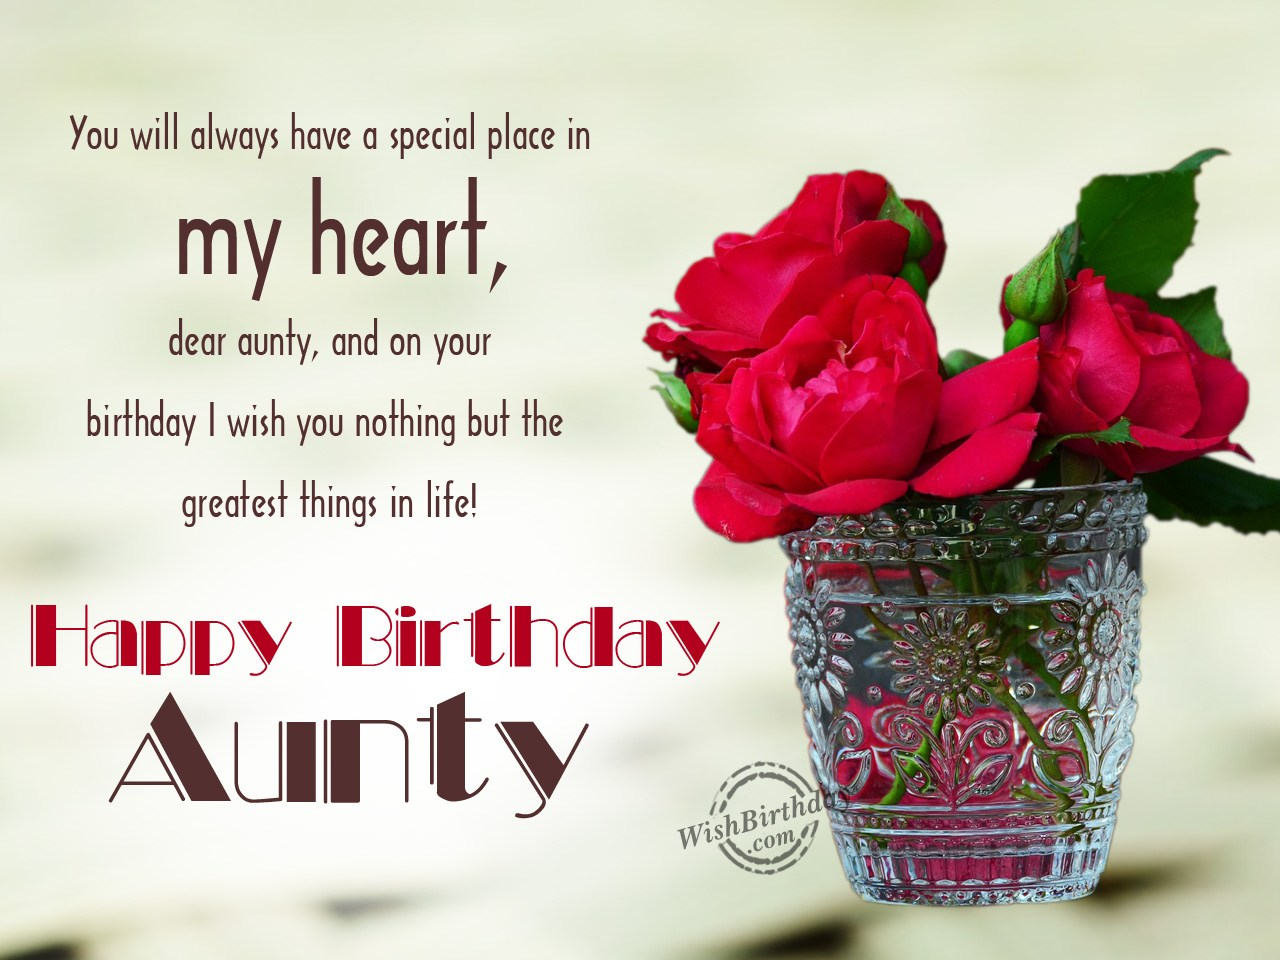 birthday message for aunty images ; You-will-always-have-a-special-place-in-my-heart